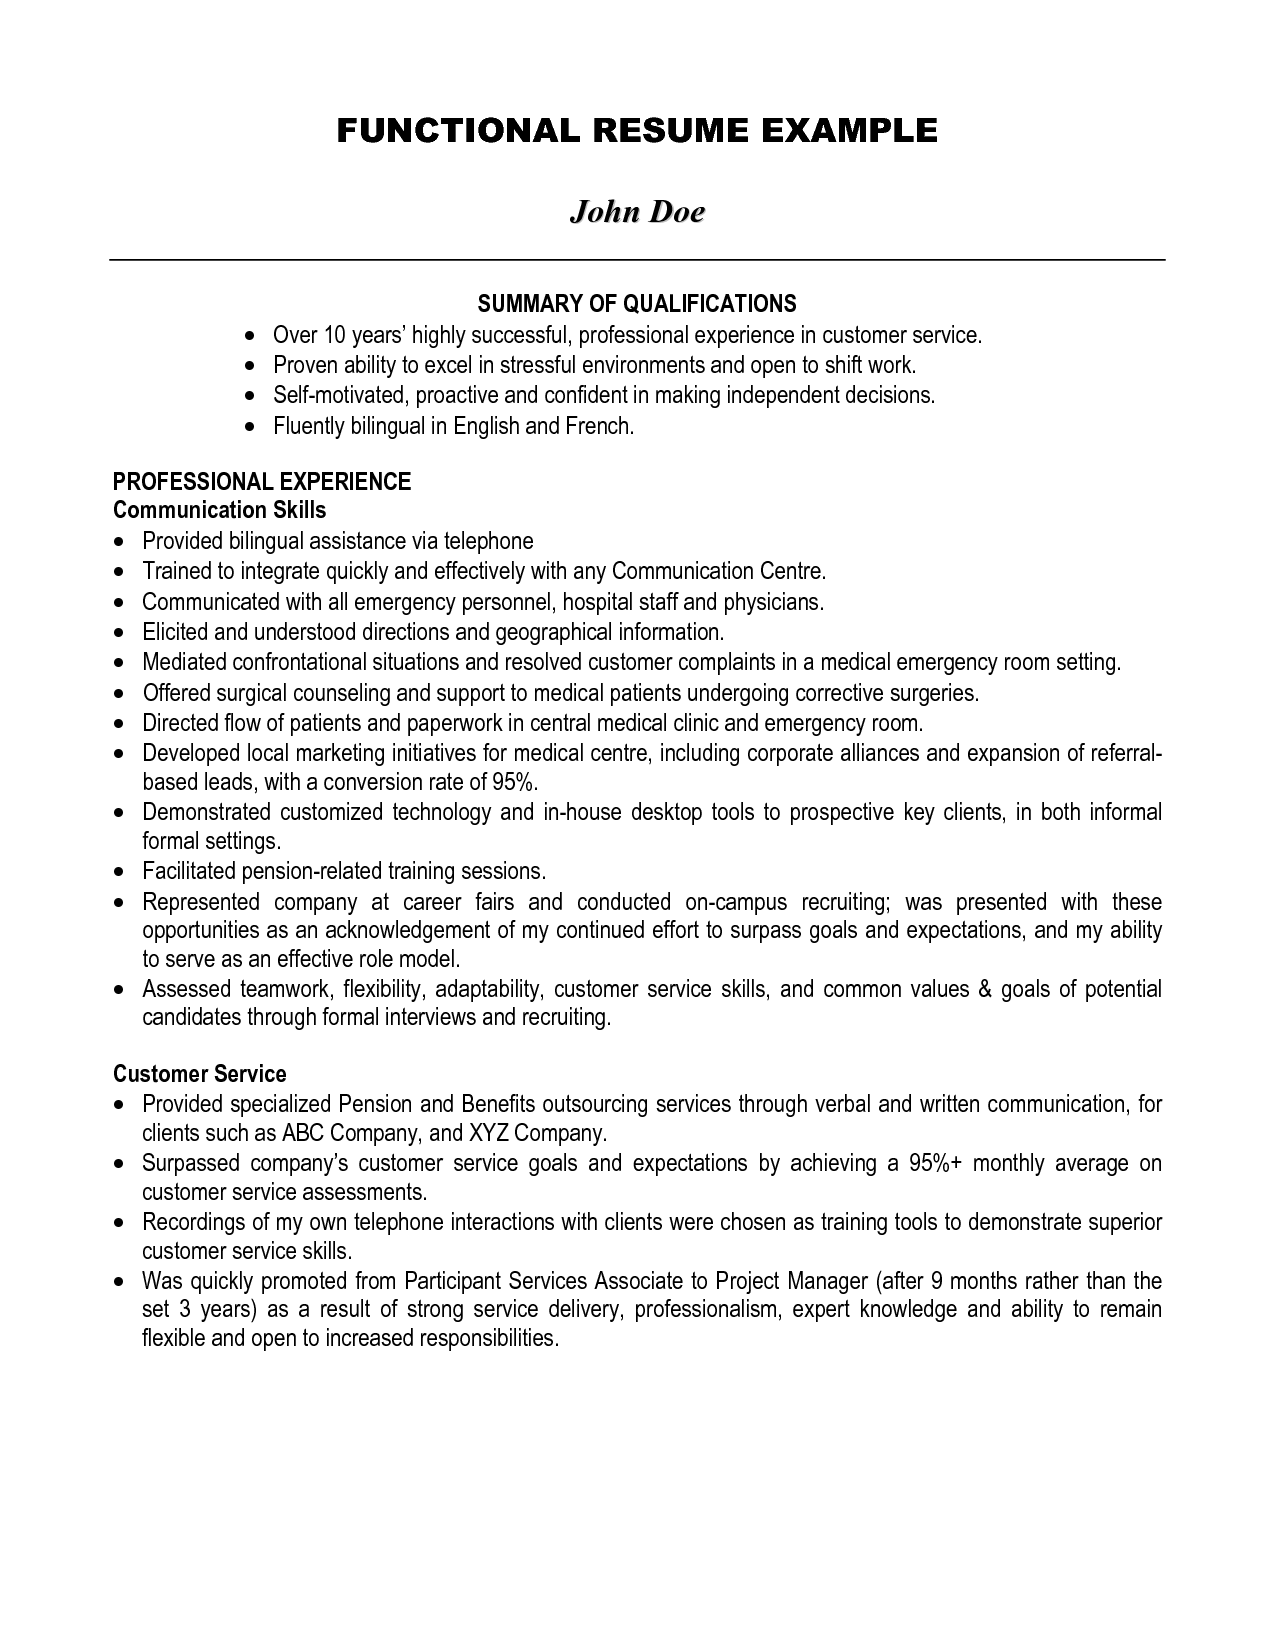 Examples of resume summary for customer service